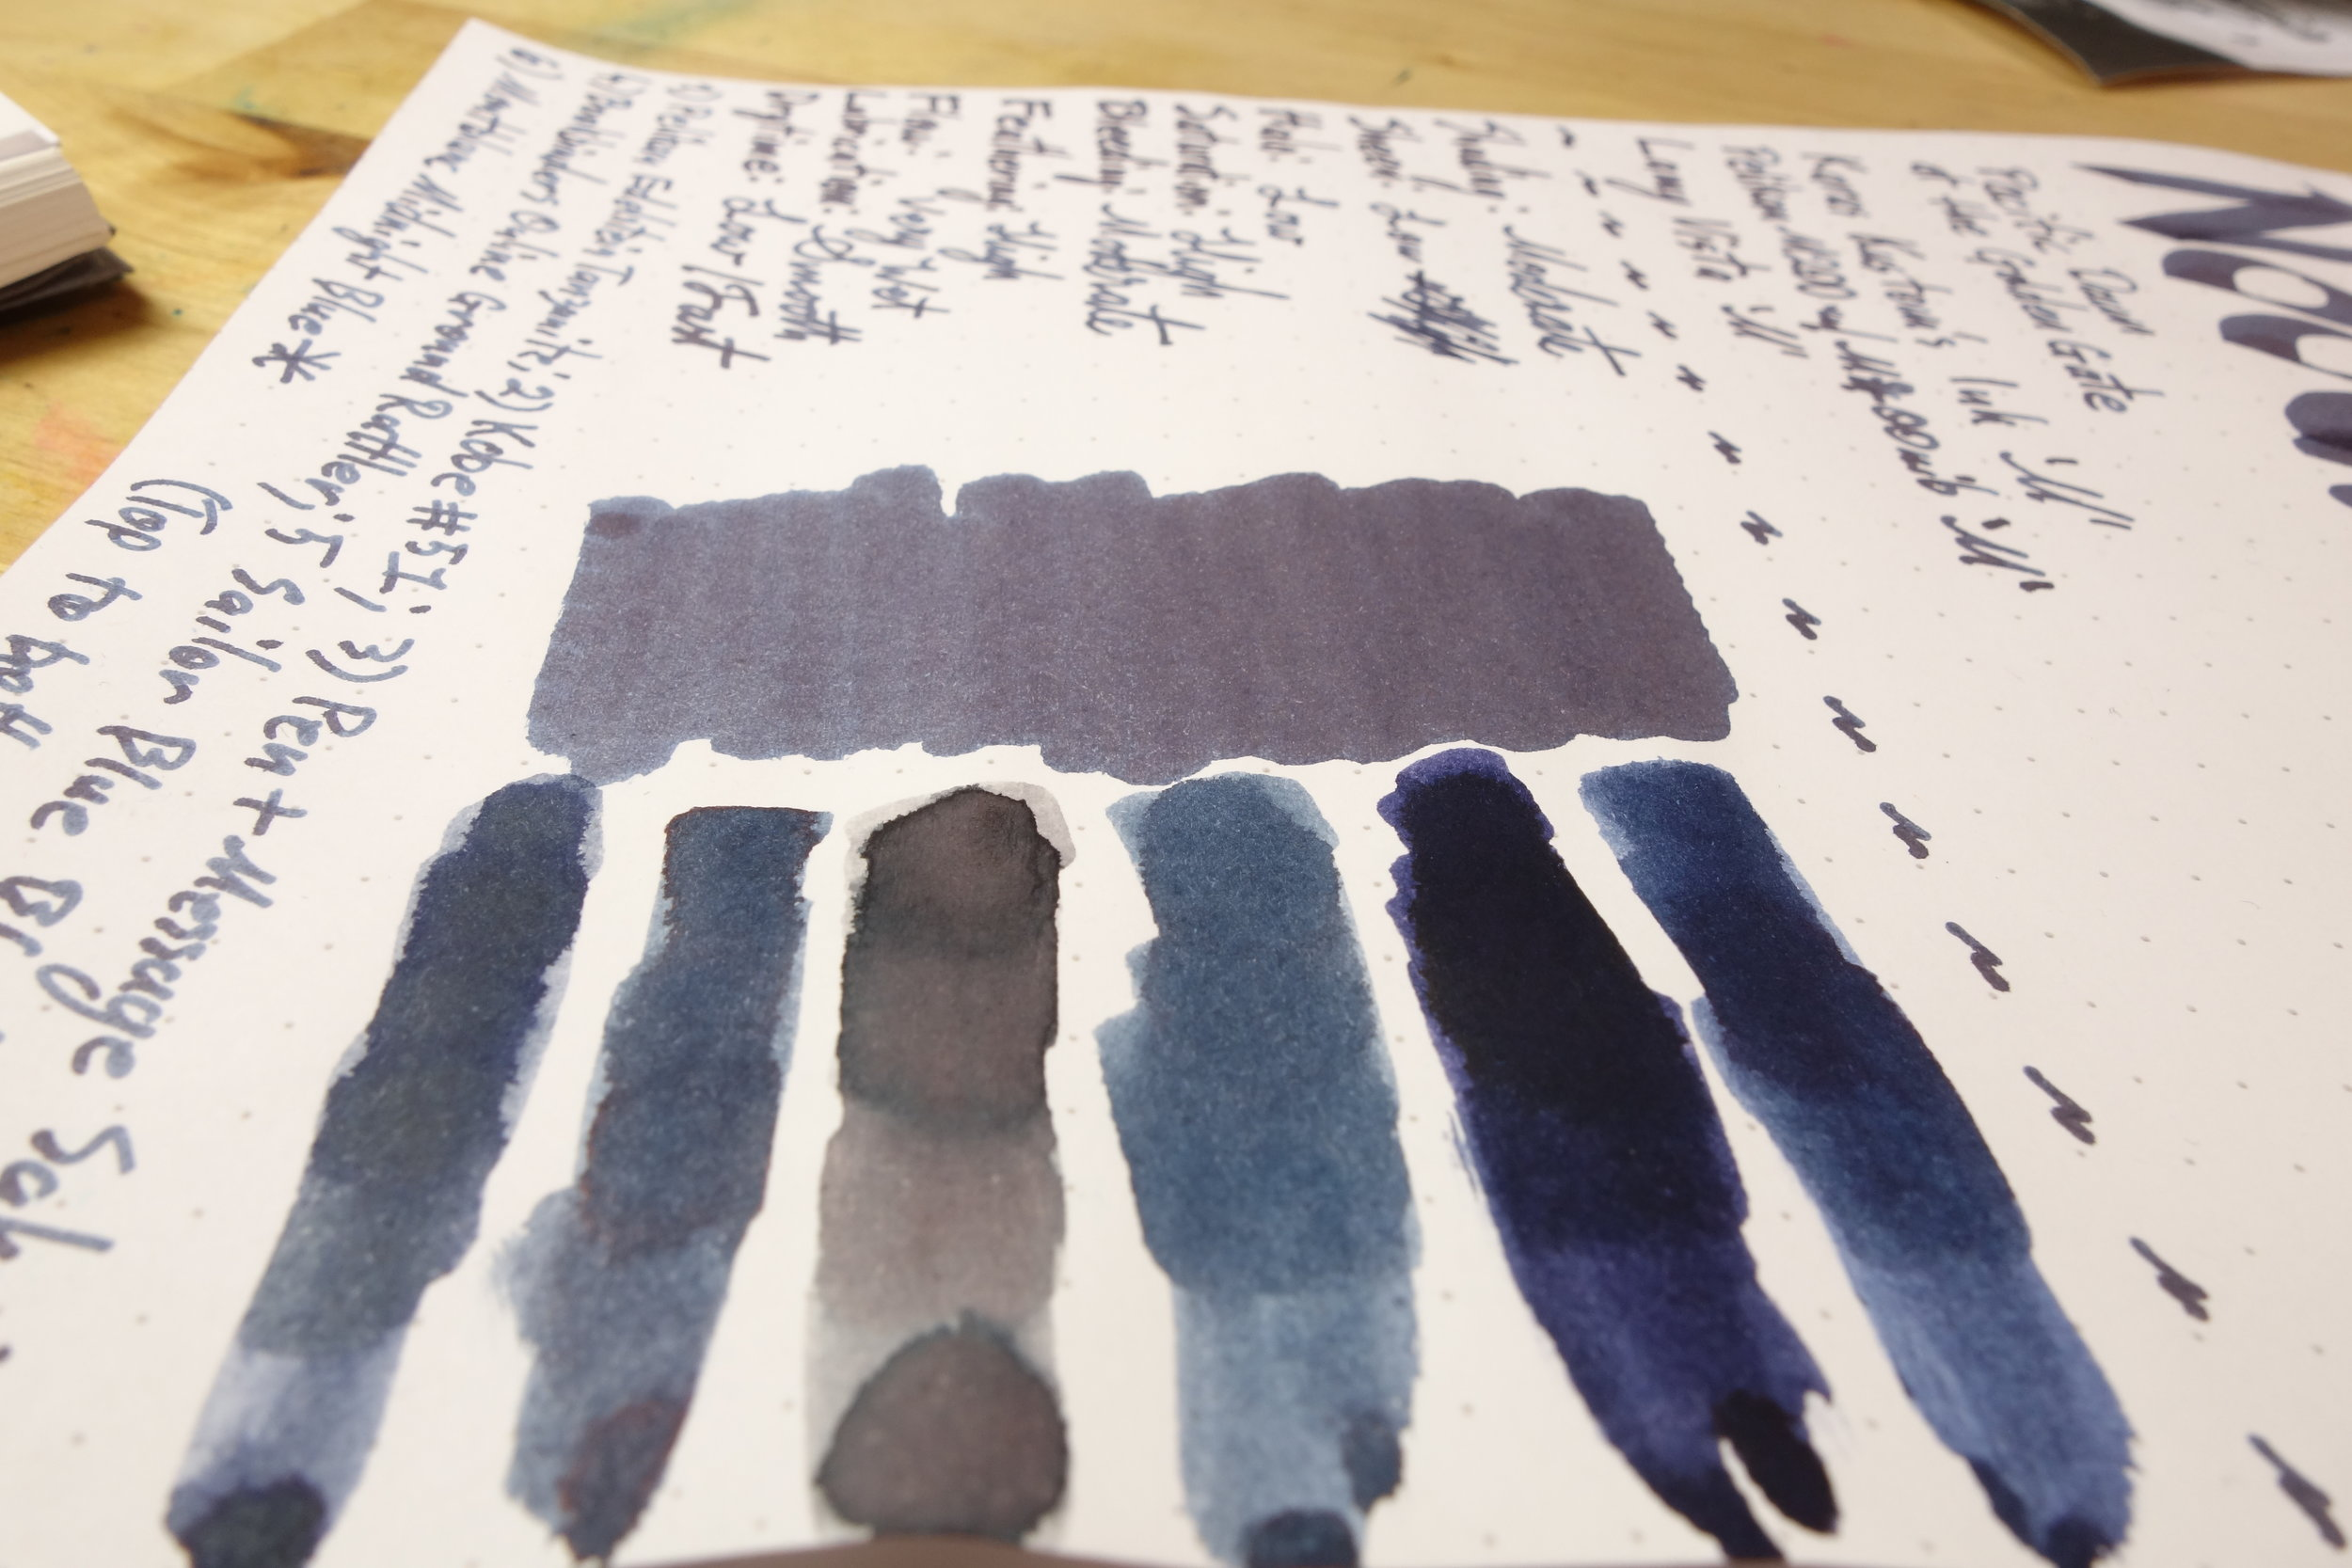 On Rhodia (left to right): 1) Montblanc Midnight Blue*; 2) Sailor Blue Black; 3) Bookbinder's Online Ground Rattler; 4) Pen + Message Saku; 5) Kobe #51 Kano Cho Midnight; and 6) Pelikan Edelstein Tanzanite.  * My sample of this was unlabelled but I do believe this is indeed Montblanc Midnight Blue.